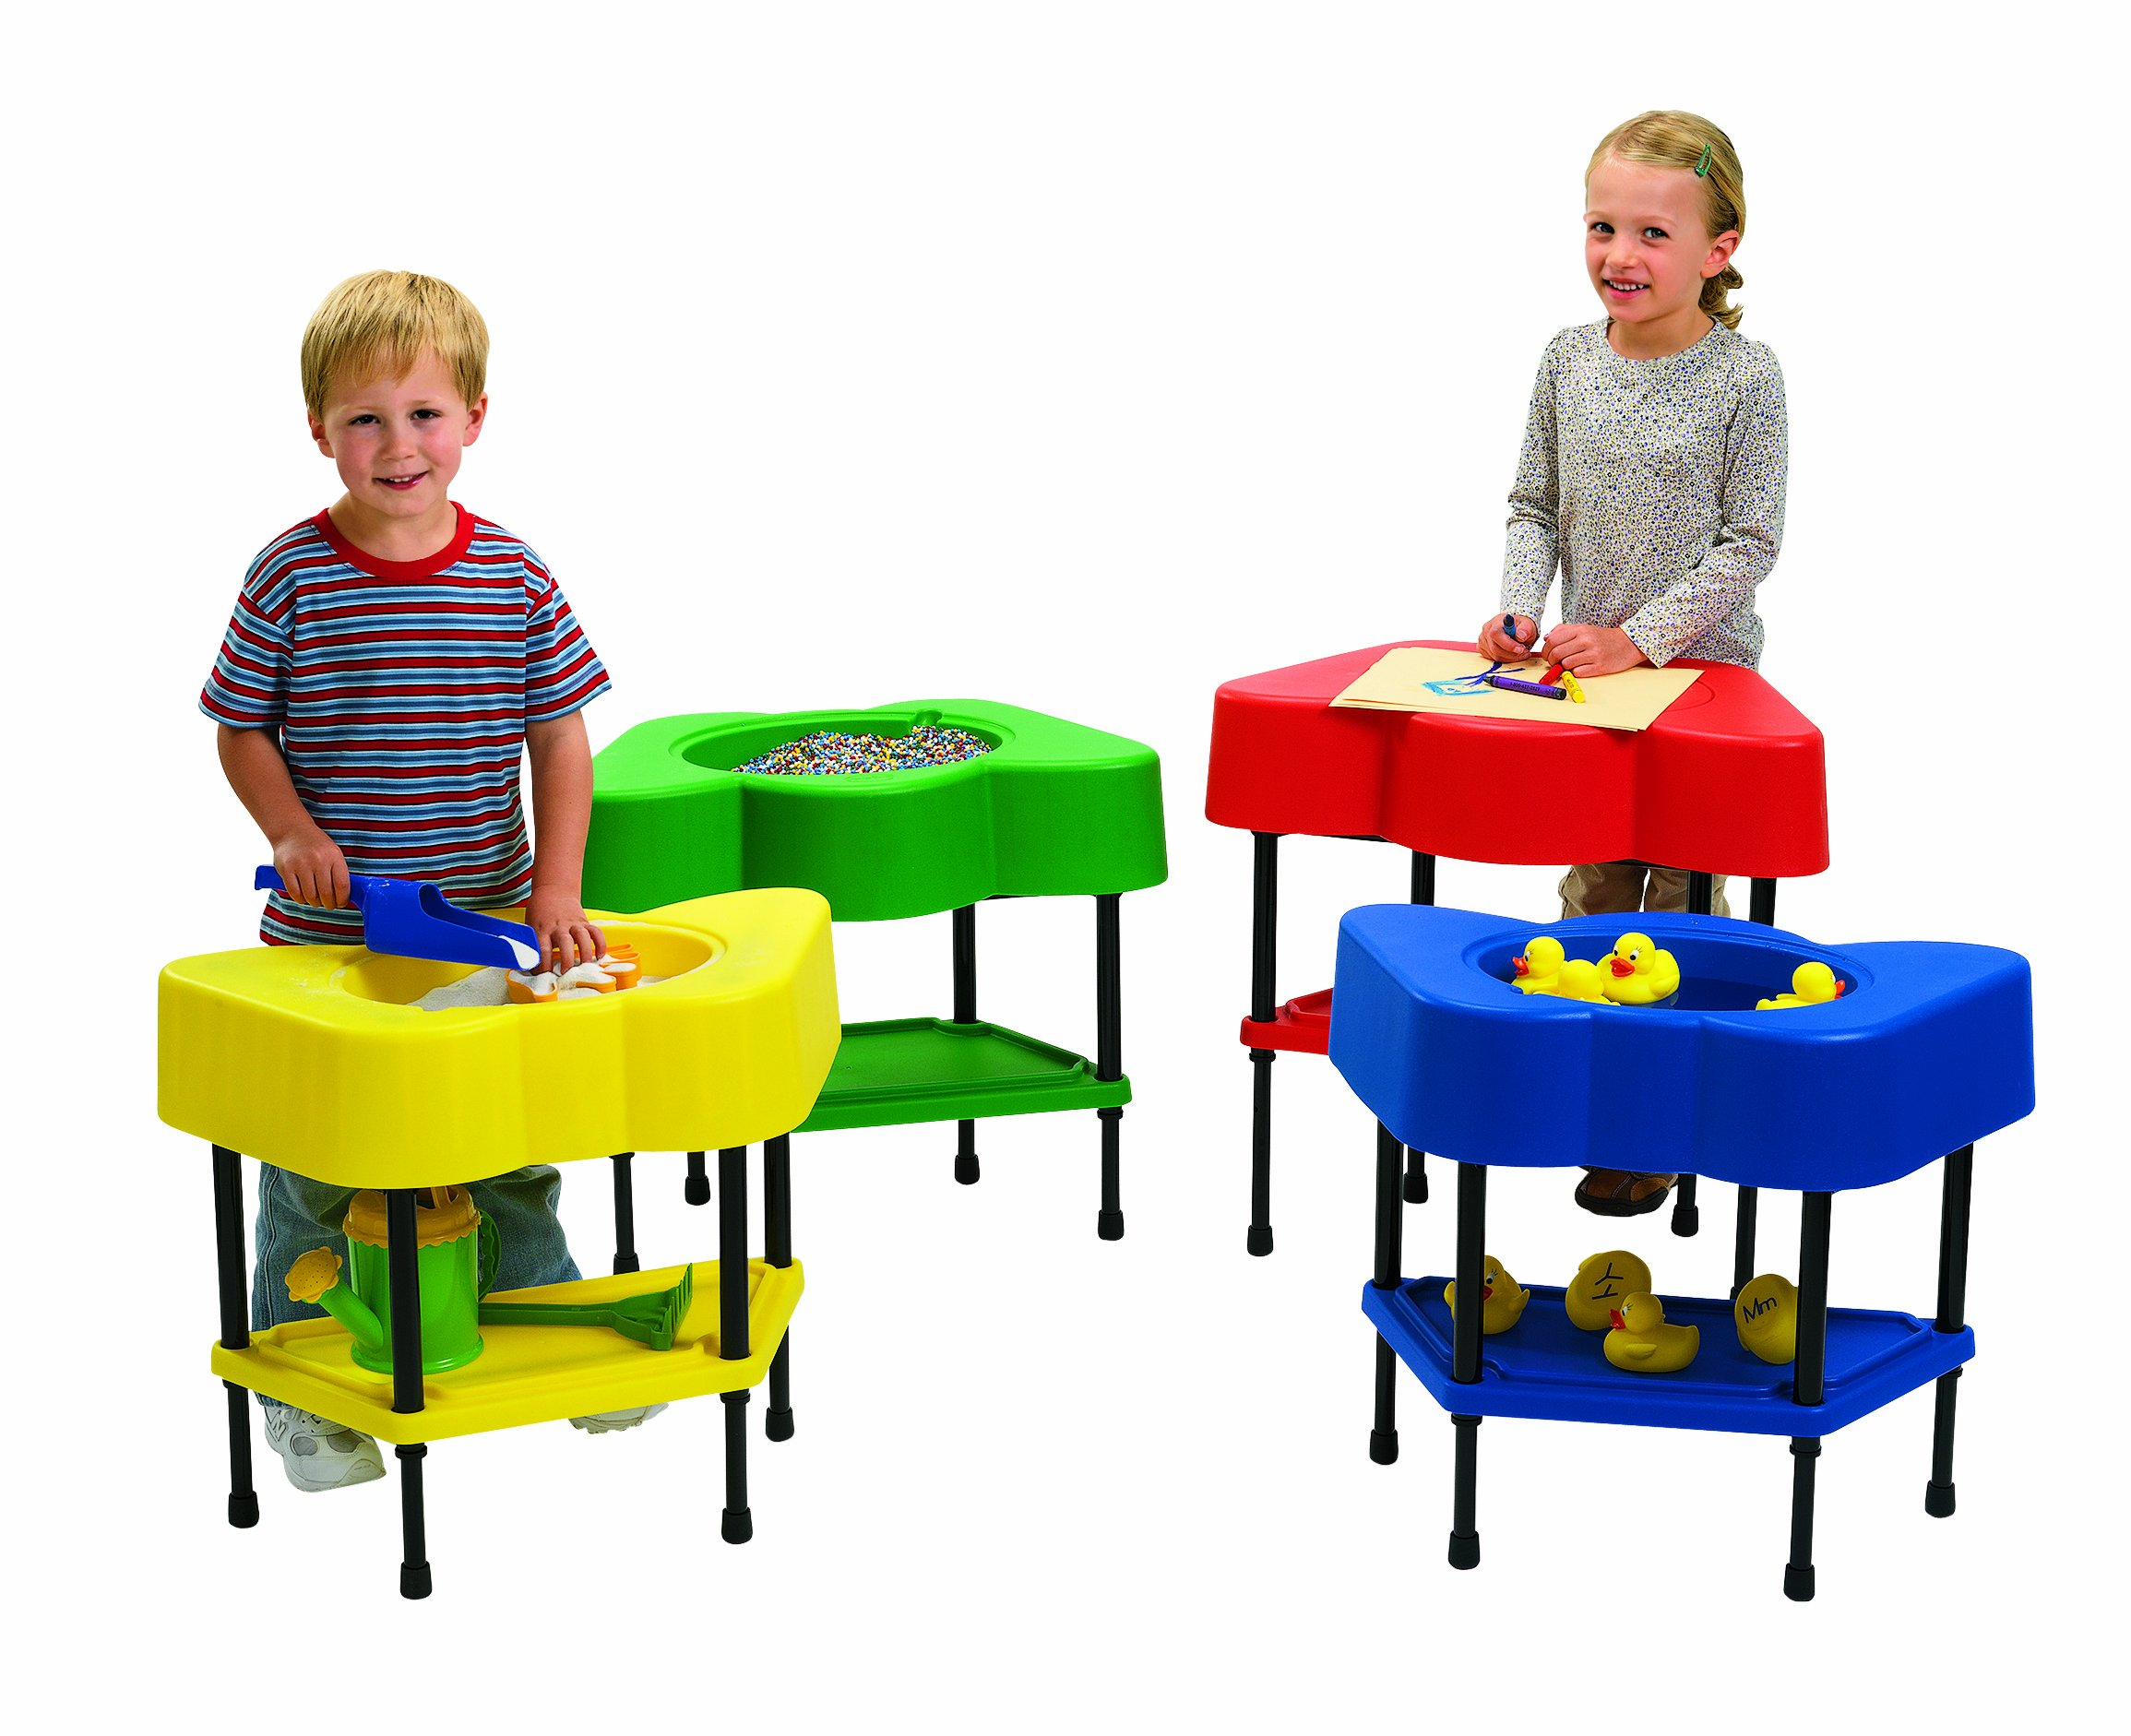 Angeles Adjustable Height Sensory Tables, 24'' by 13'' by 18-24'' (Set of 4) - Configure Fun Shaped Tables in a Row or Circle - Bright Colors, Lid and Storage Shelf - Fill with Sand, Toys, Beads and More by Angeles